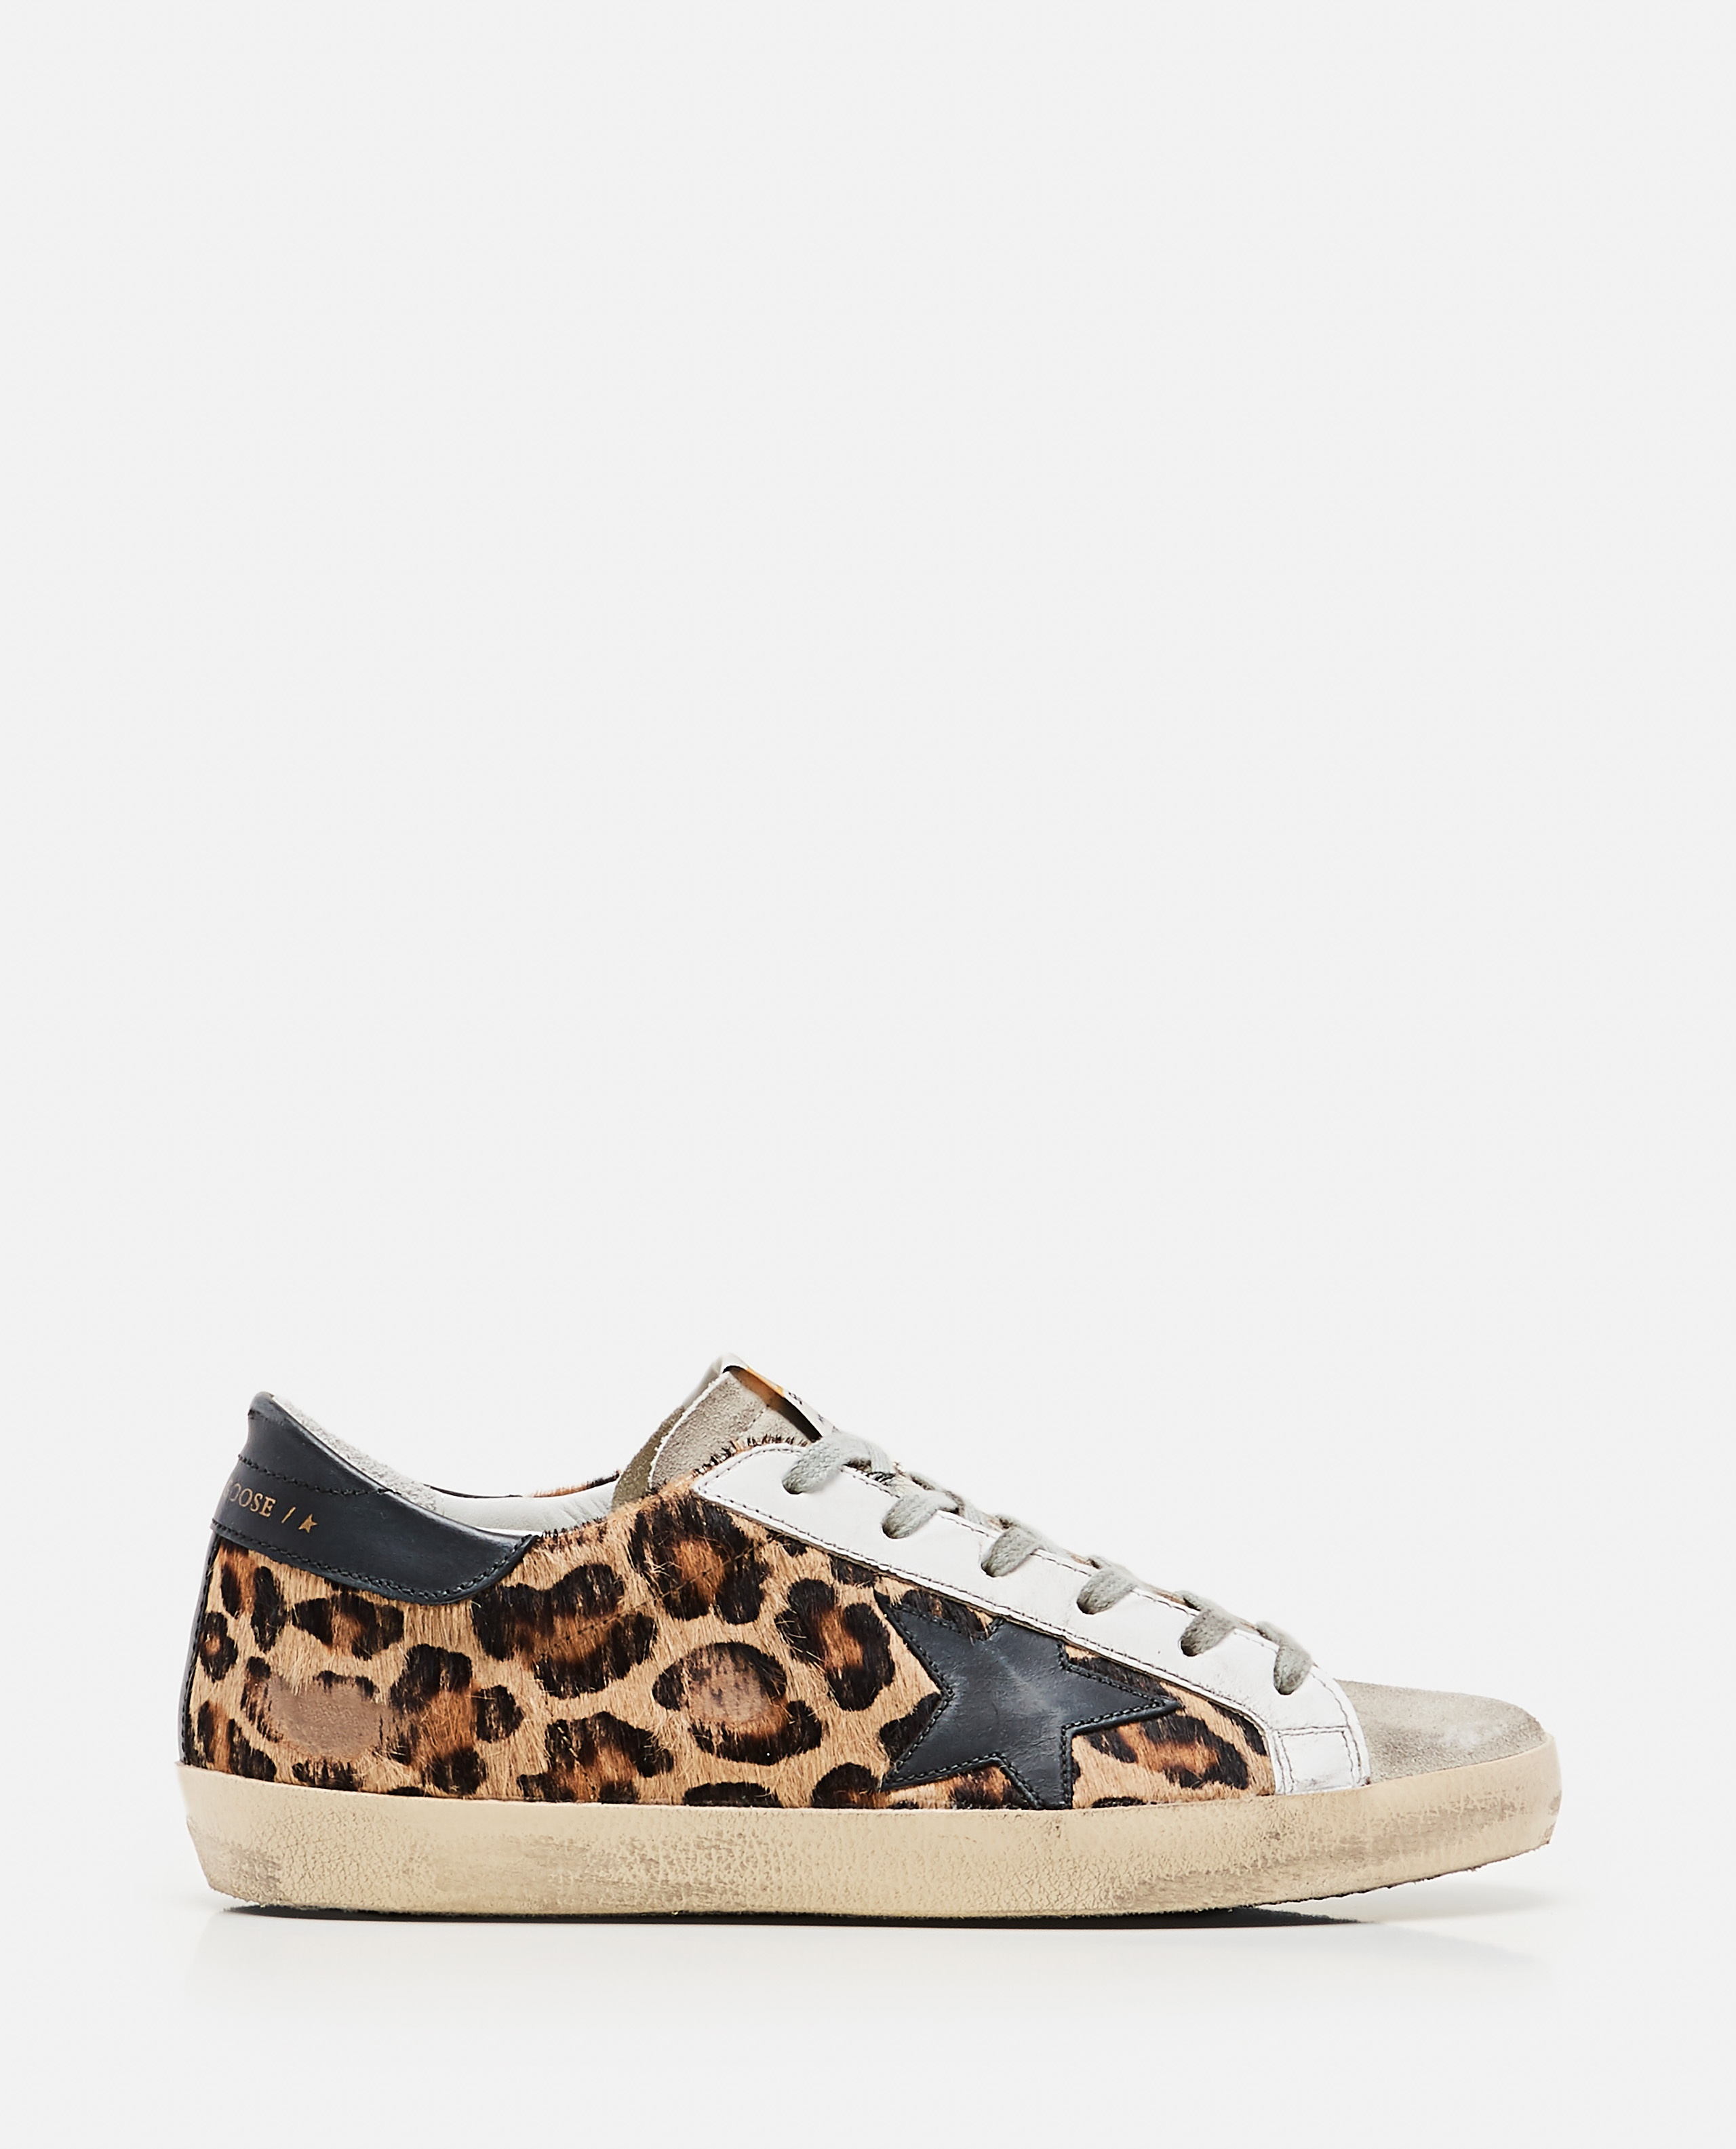 Superstar classic Golden Goose sneakers in spotted pony skin Donna Golden Goose 000286810042304 1